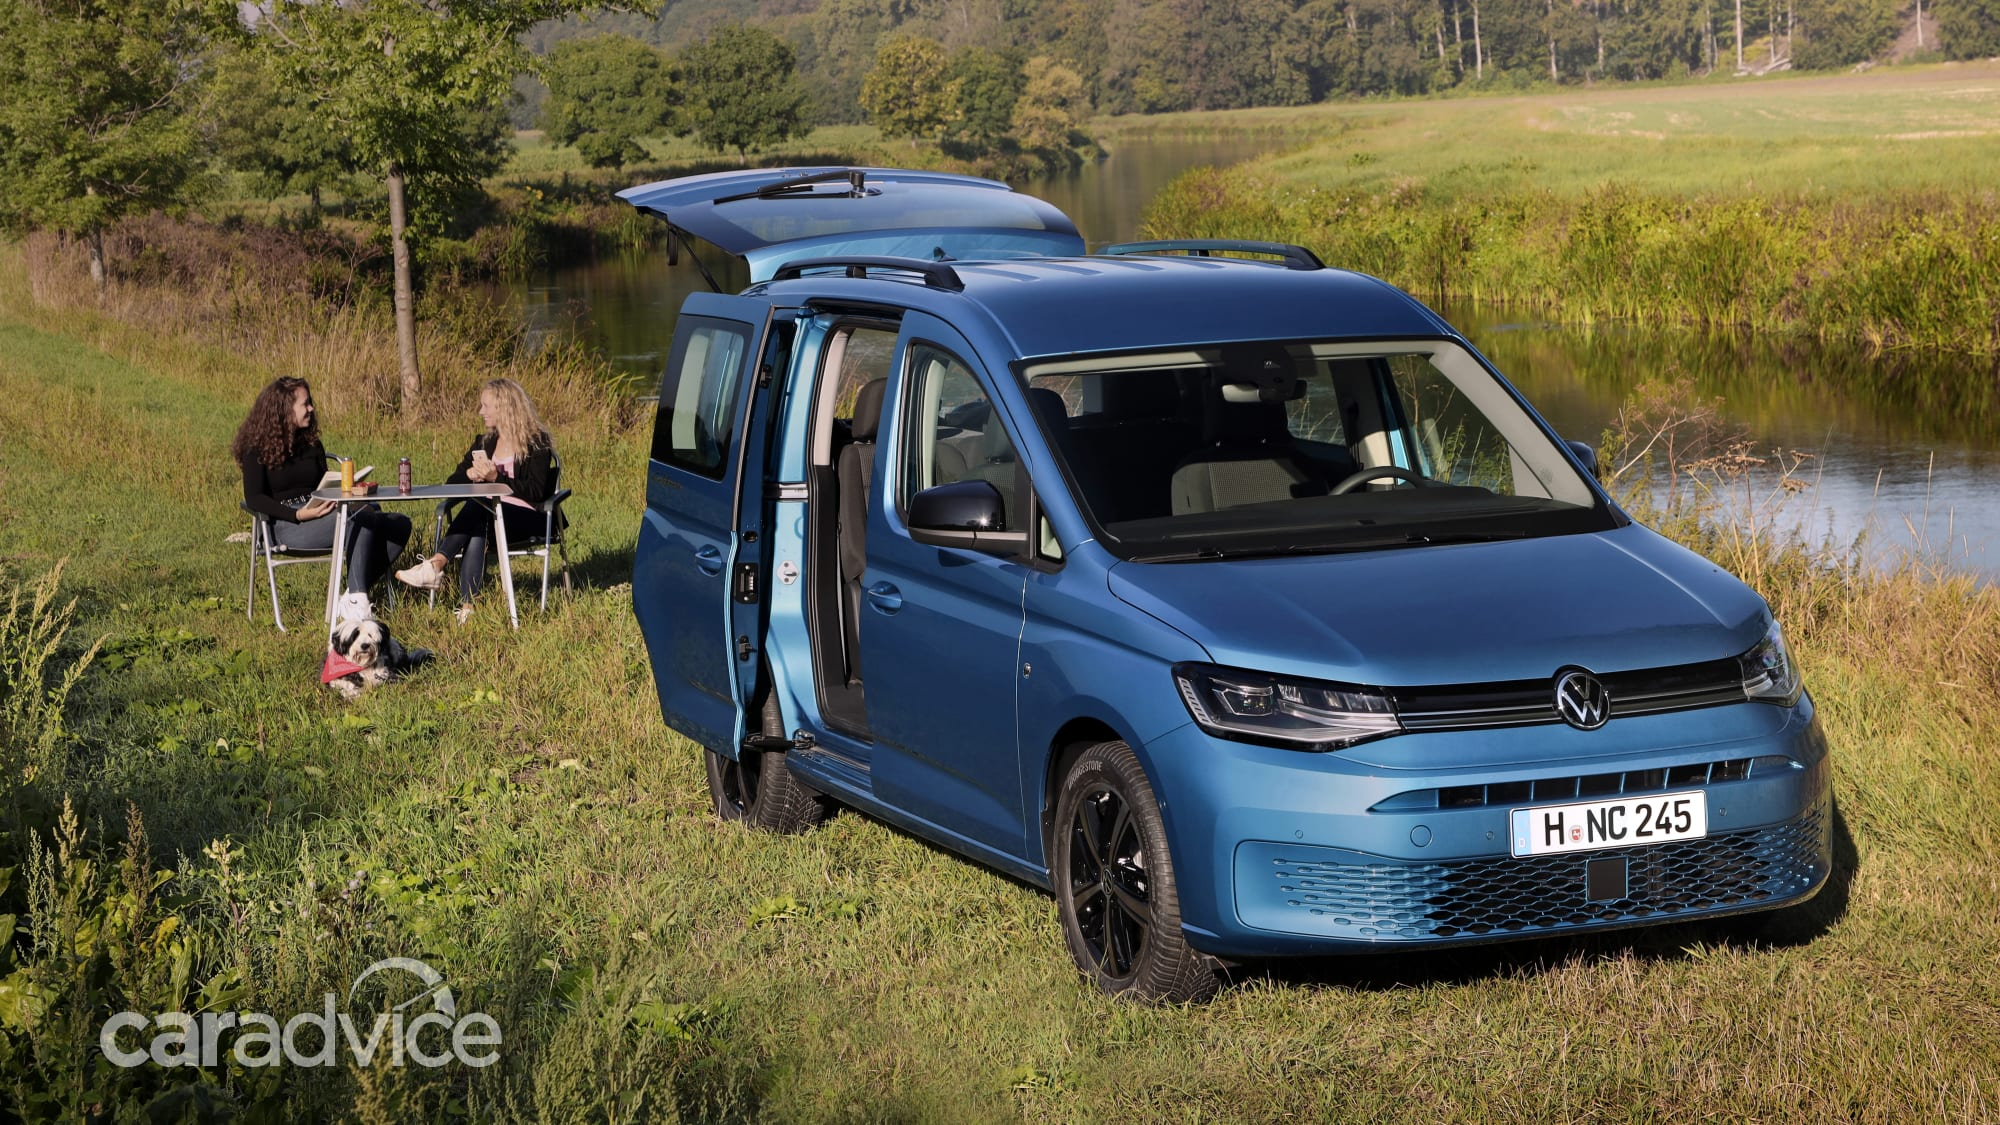 2021 Volkswagen Caddy price and specs | CarAdvice